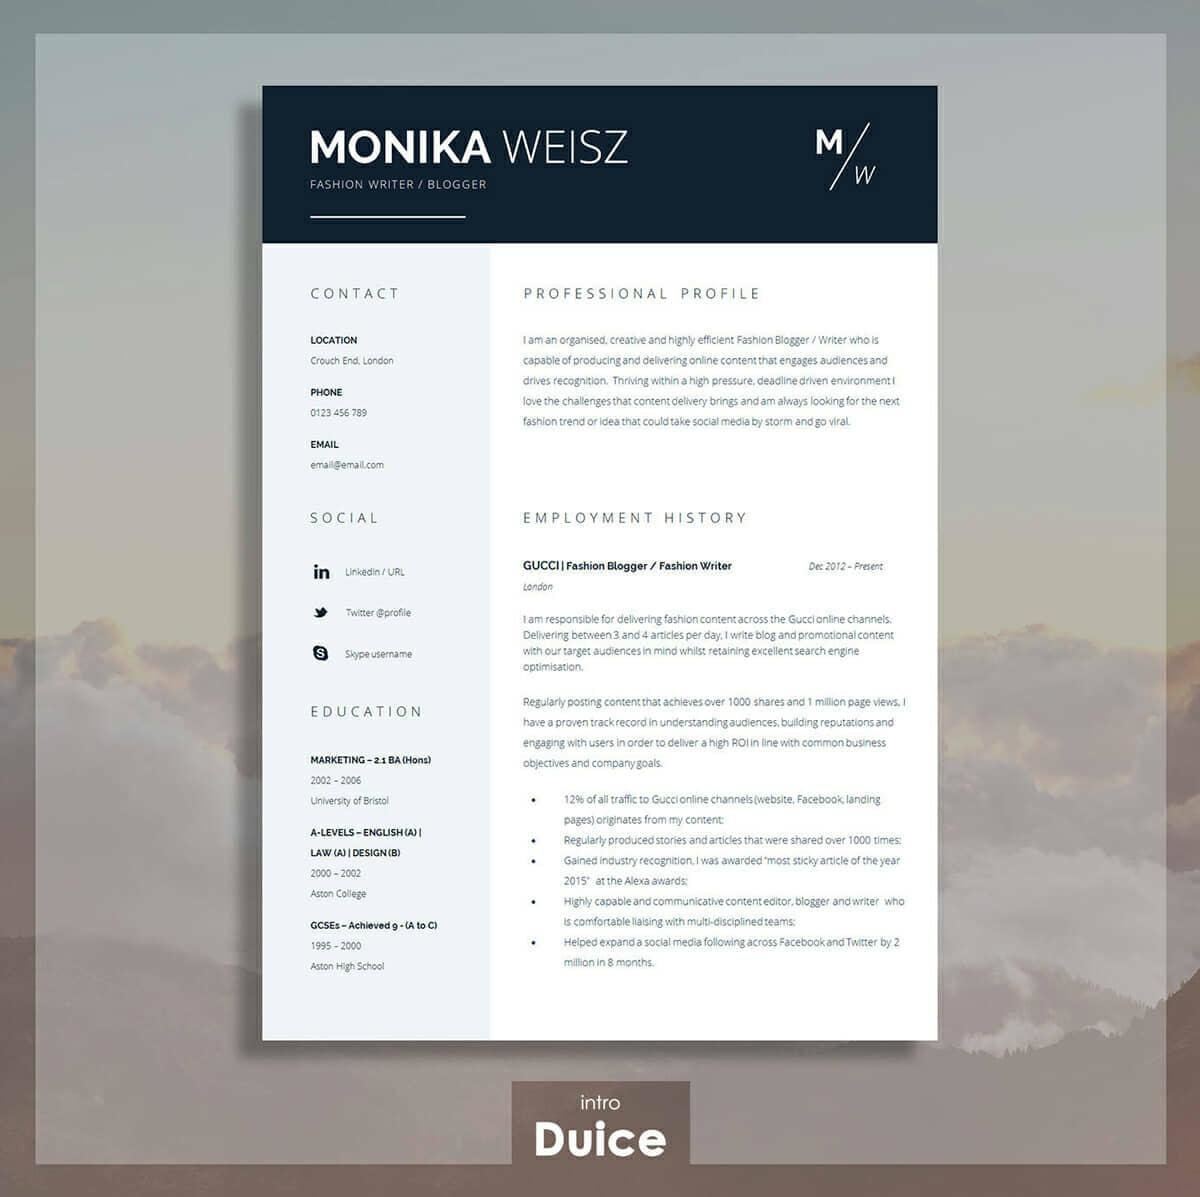 best resume templates for top picks to high quality senior network administrator profile Resume High Quality Resume Templates